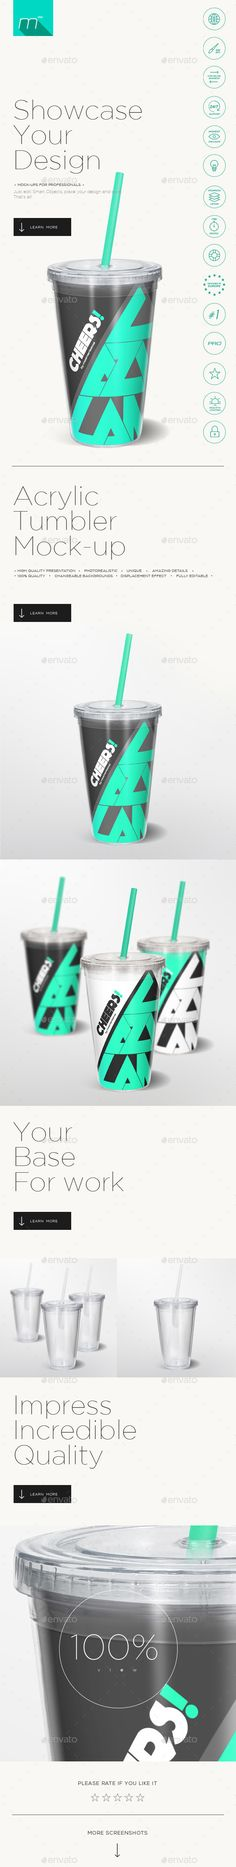 Acrylic Tumbler Mockup — Photoshop PSD #customize #fast • Available here → https://graphicriver.net/item/acrylic-tumbler-mockup/13936804?ref=pxcr